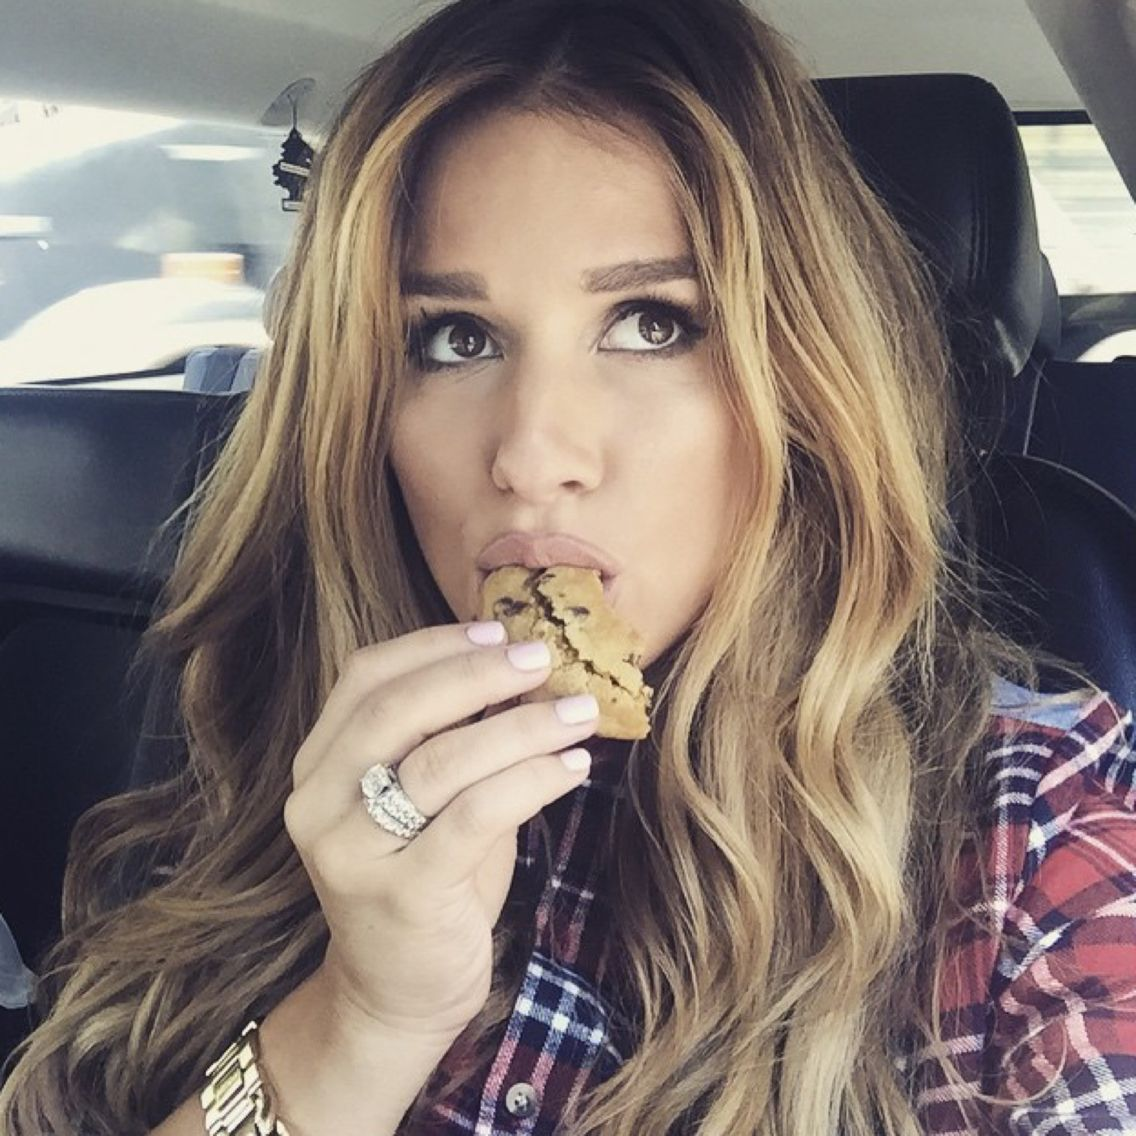 Jessie Jessica james decker, Jessie james decker, Jesse